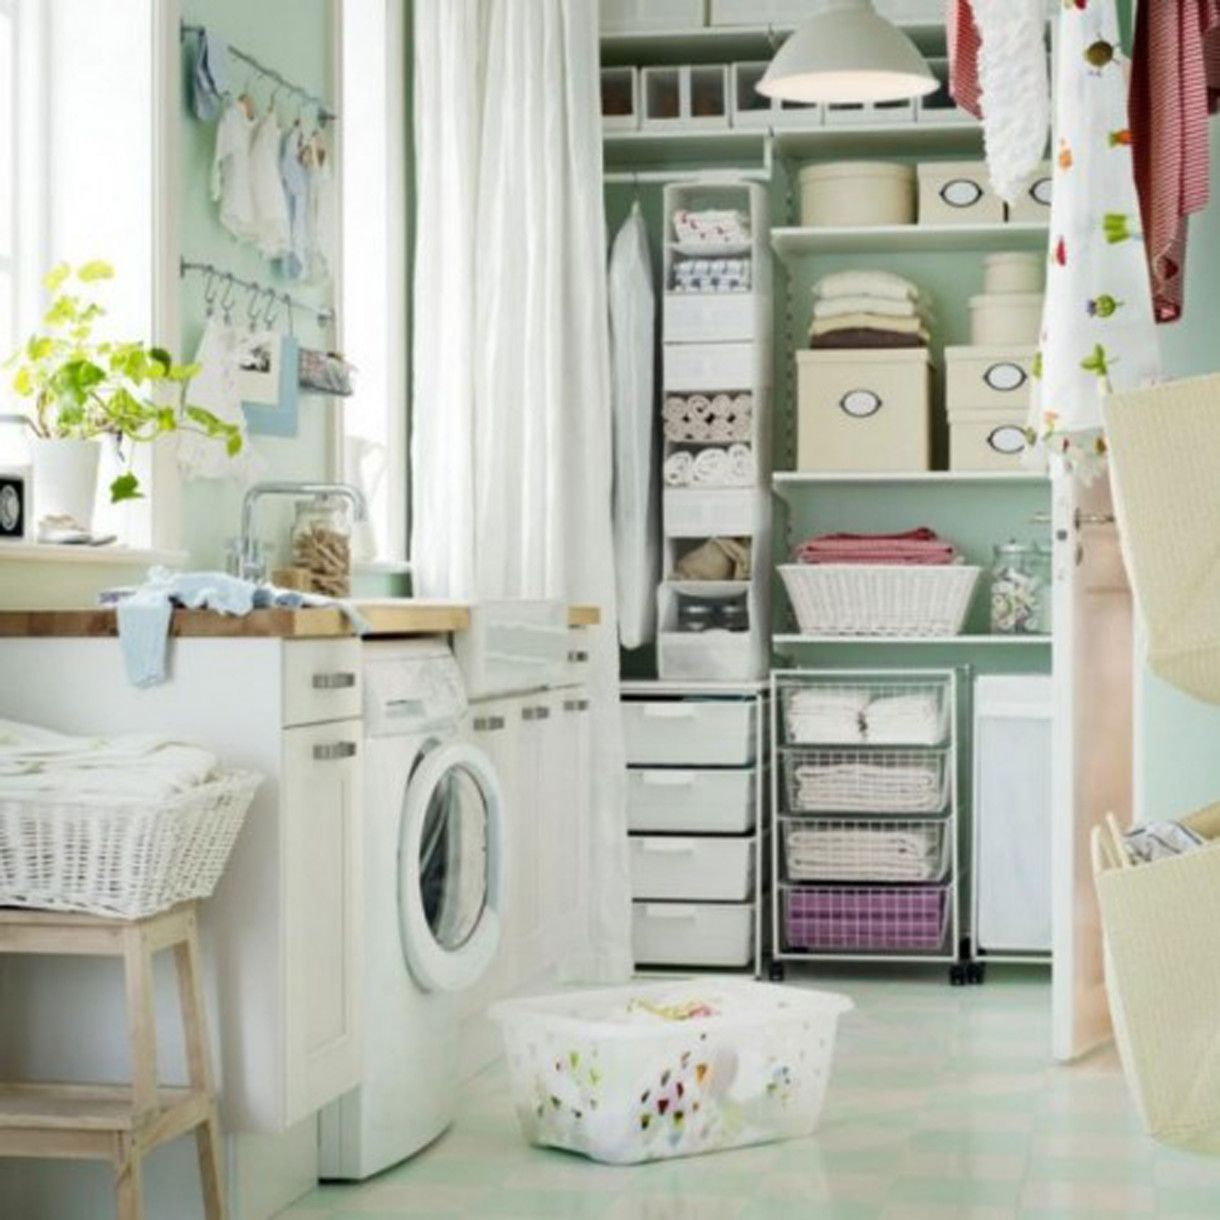 Cute Laundry Room Decor Small Laundry Room Design With Vintage Decorating Style Also Cute